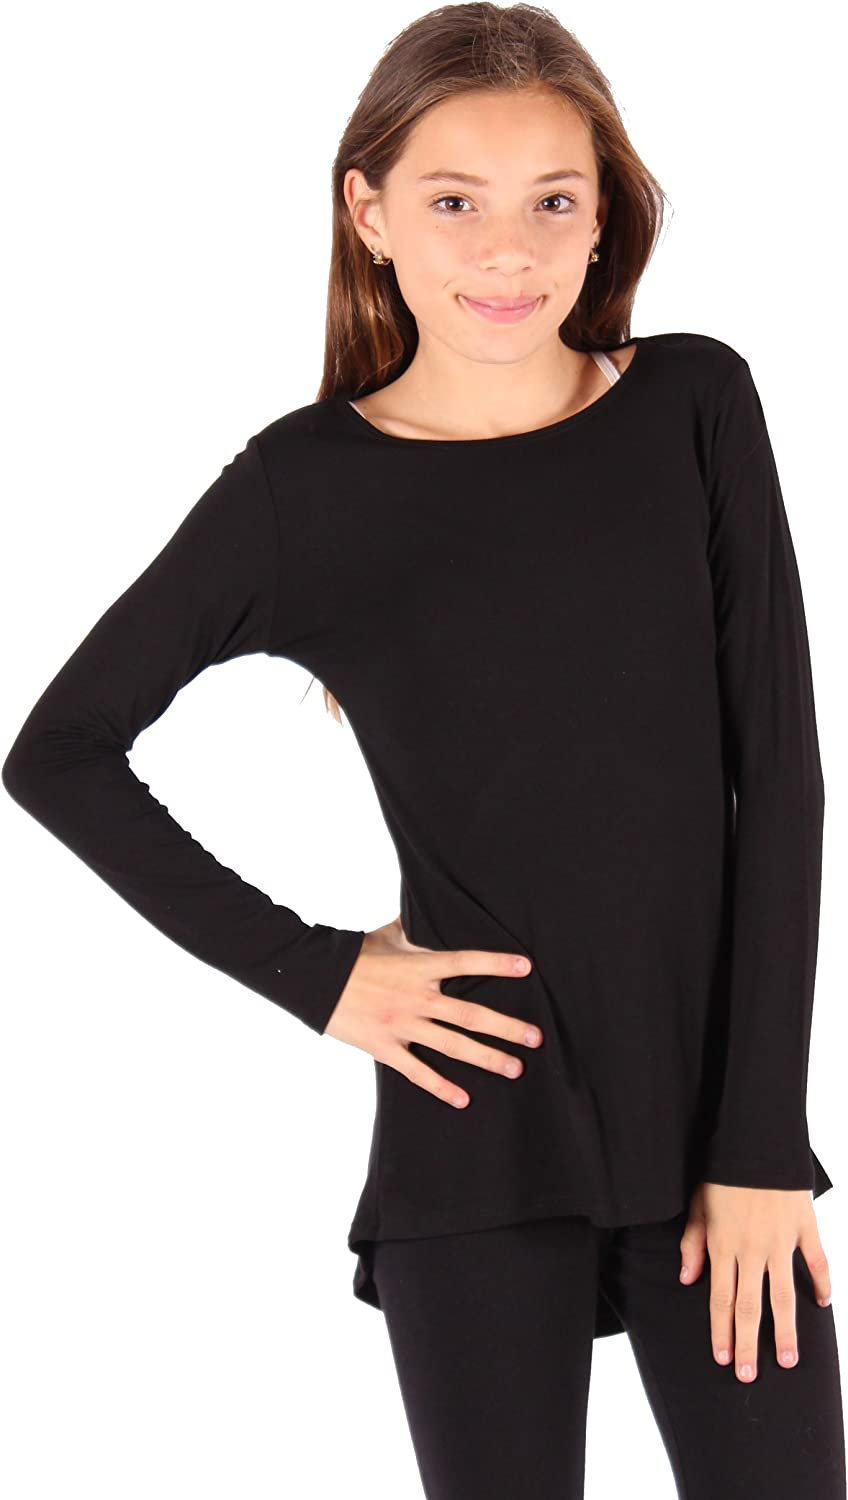 Lori & Jane Girls Long Sleeve Boho Tunic Top, Solid Color, Fluid Movement, Loose Fitting, Soft Material, Made in USA